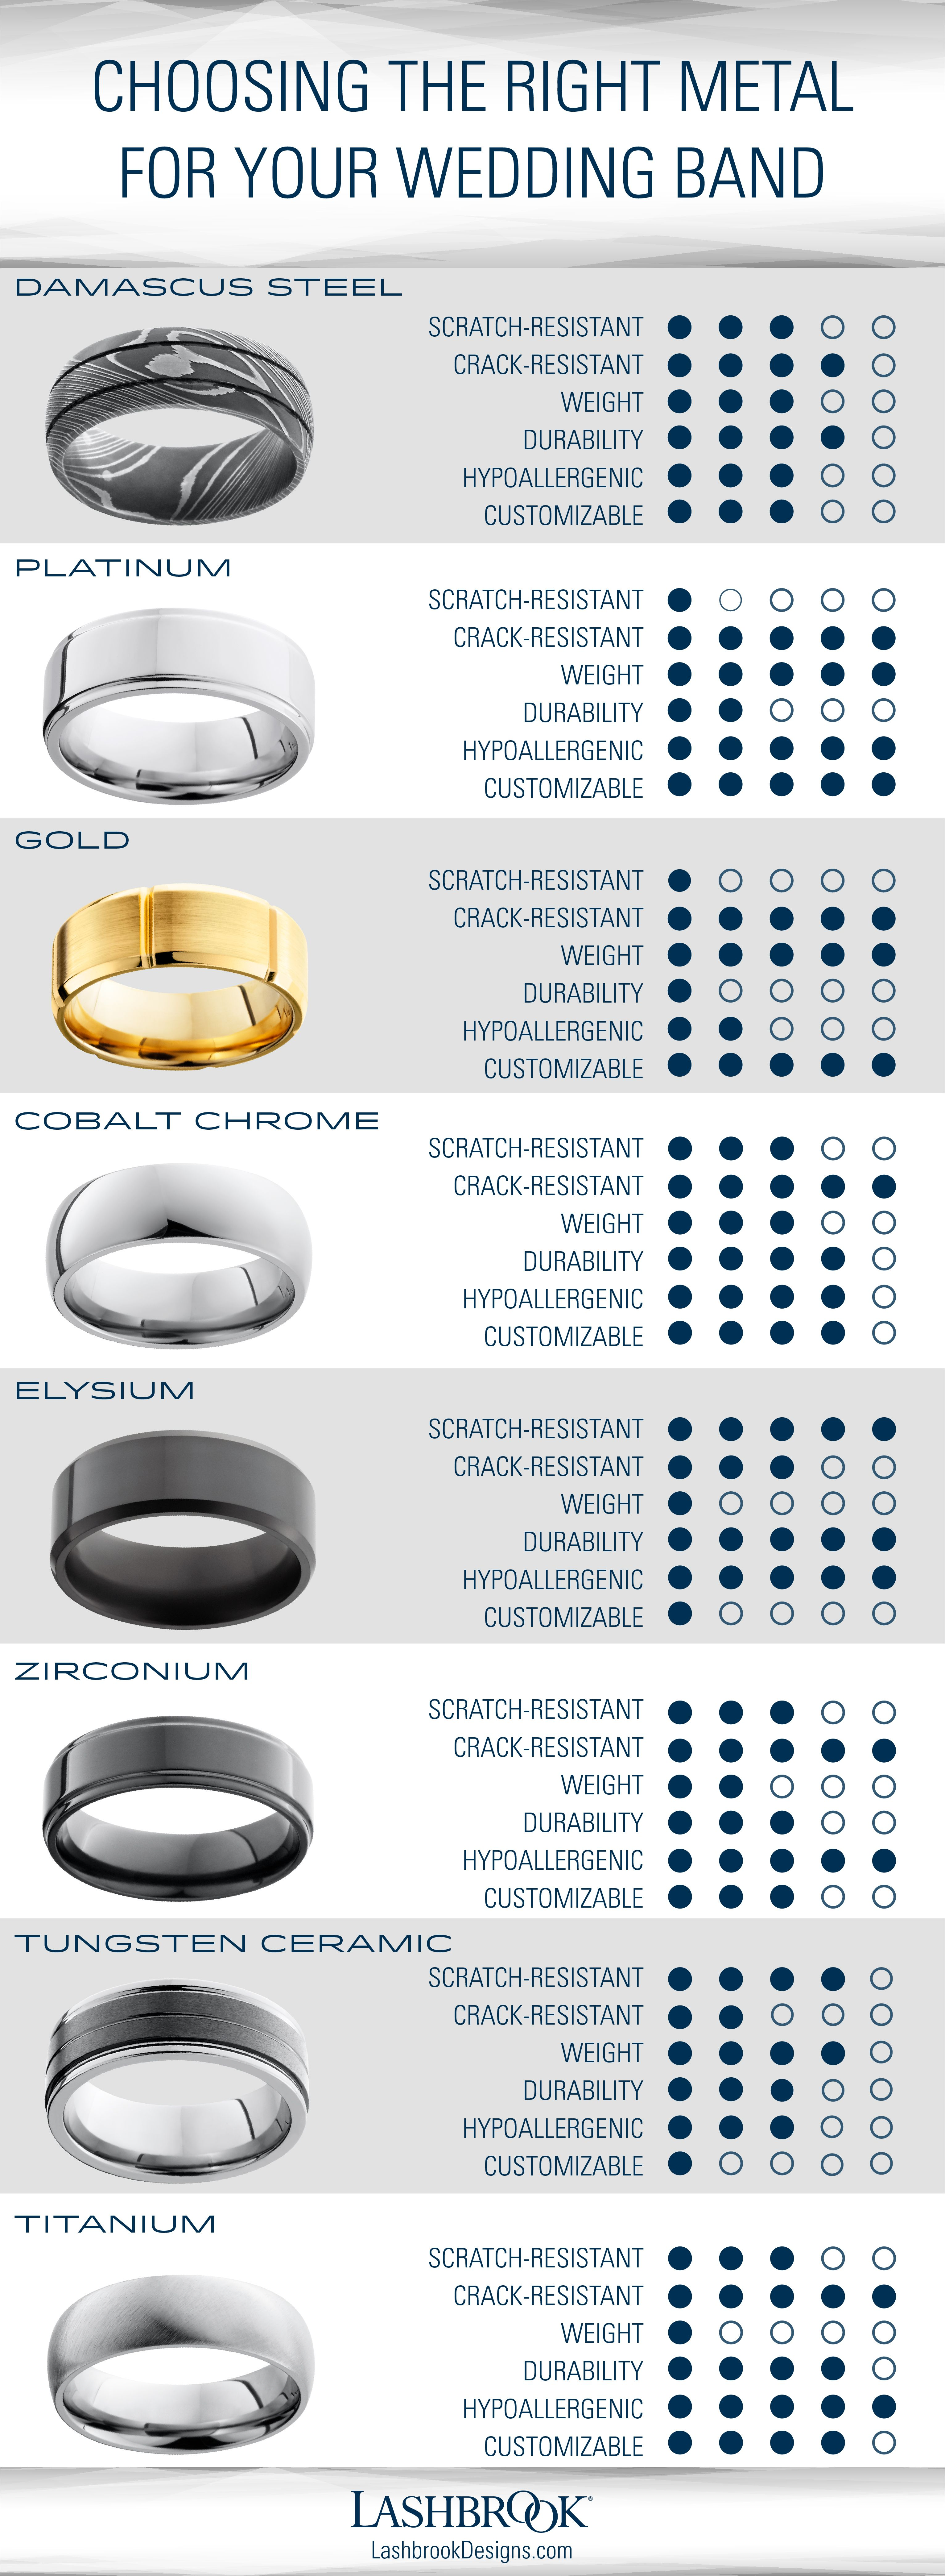 There are more wedding band metal options now than ever before